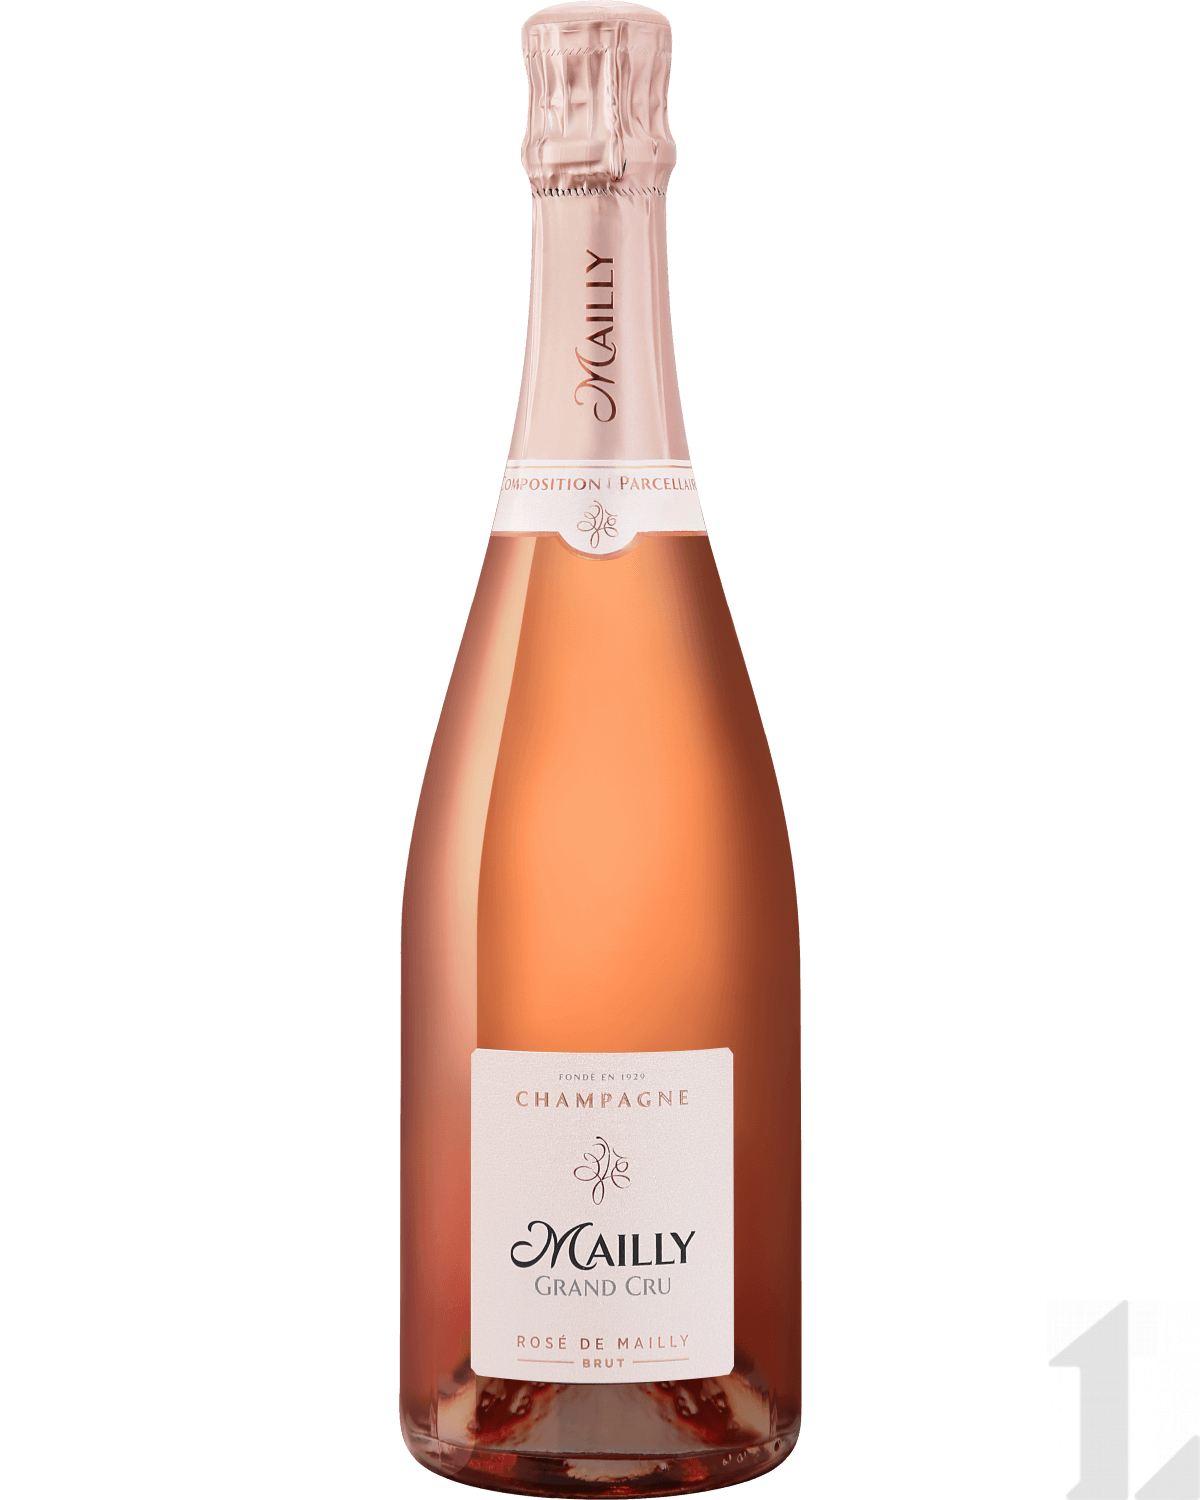 Игристое вино Mailly Grand Cru Rose de Mailly Brut Champagne AOC 0.75л